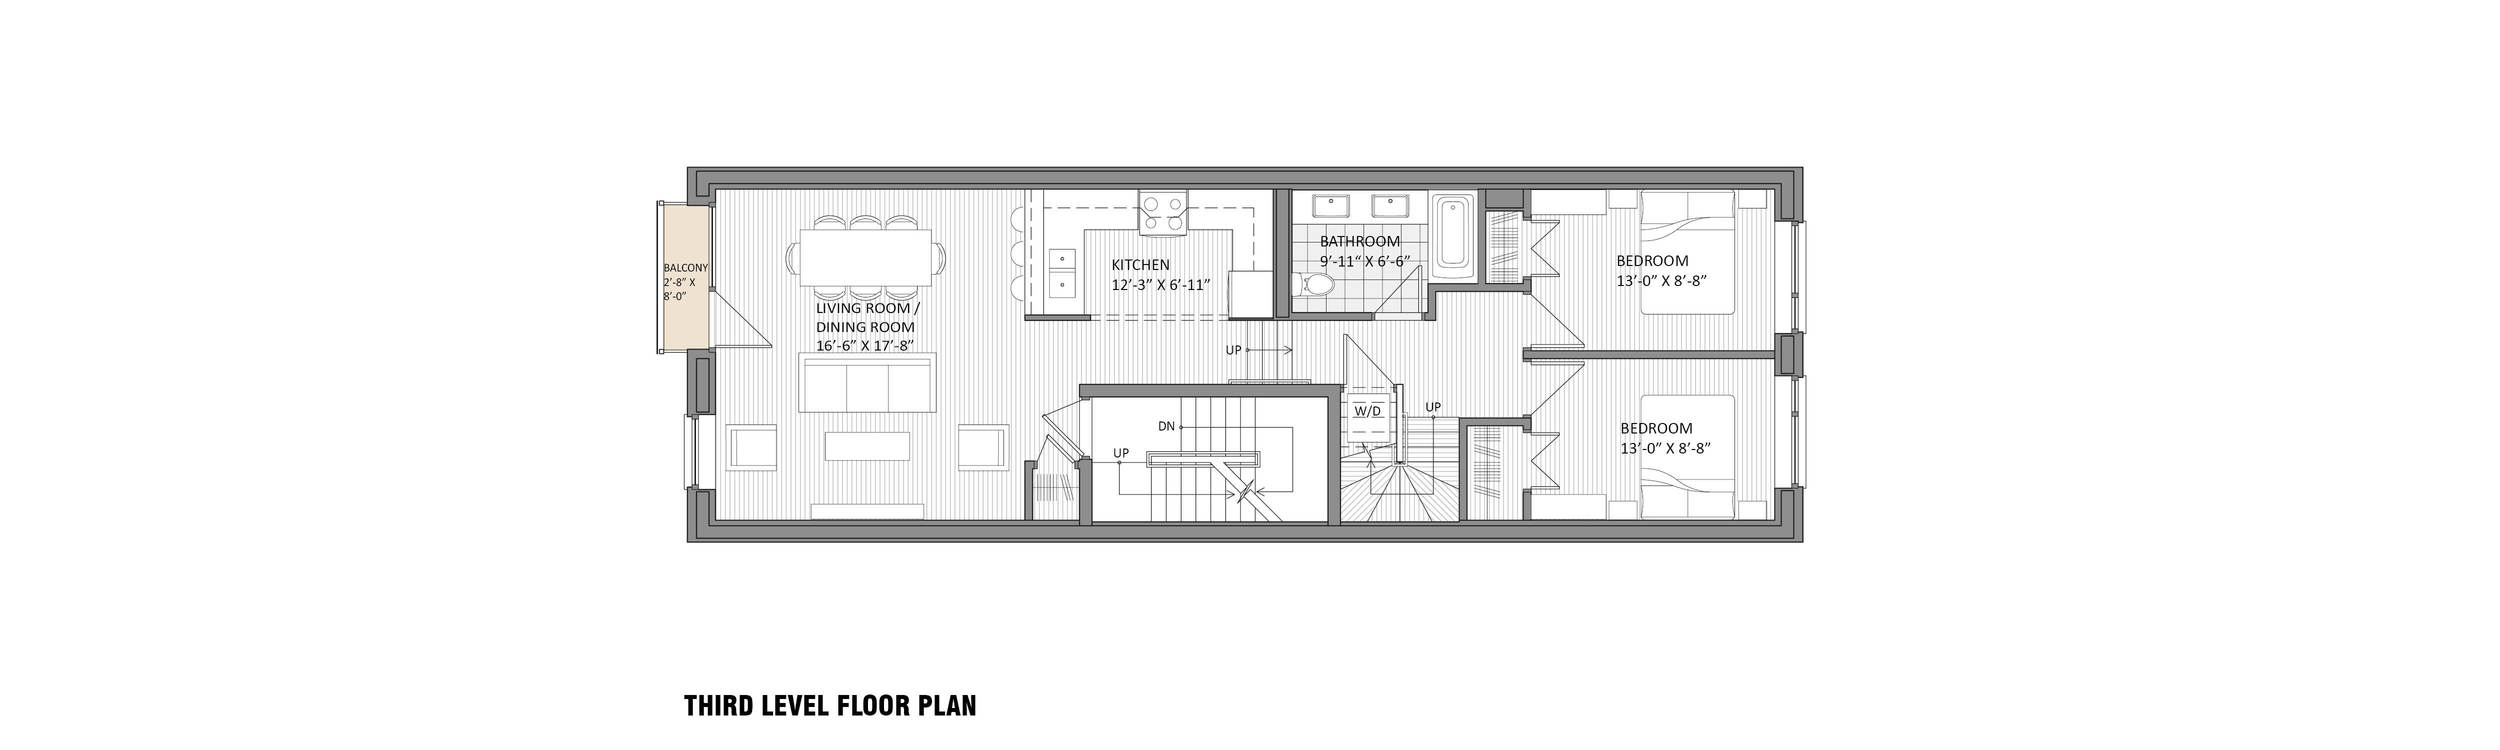 Floor Plan cropped_Website5.jpg